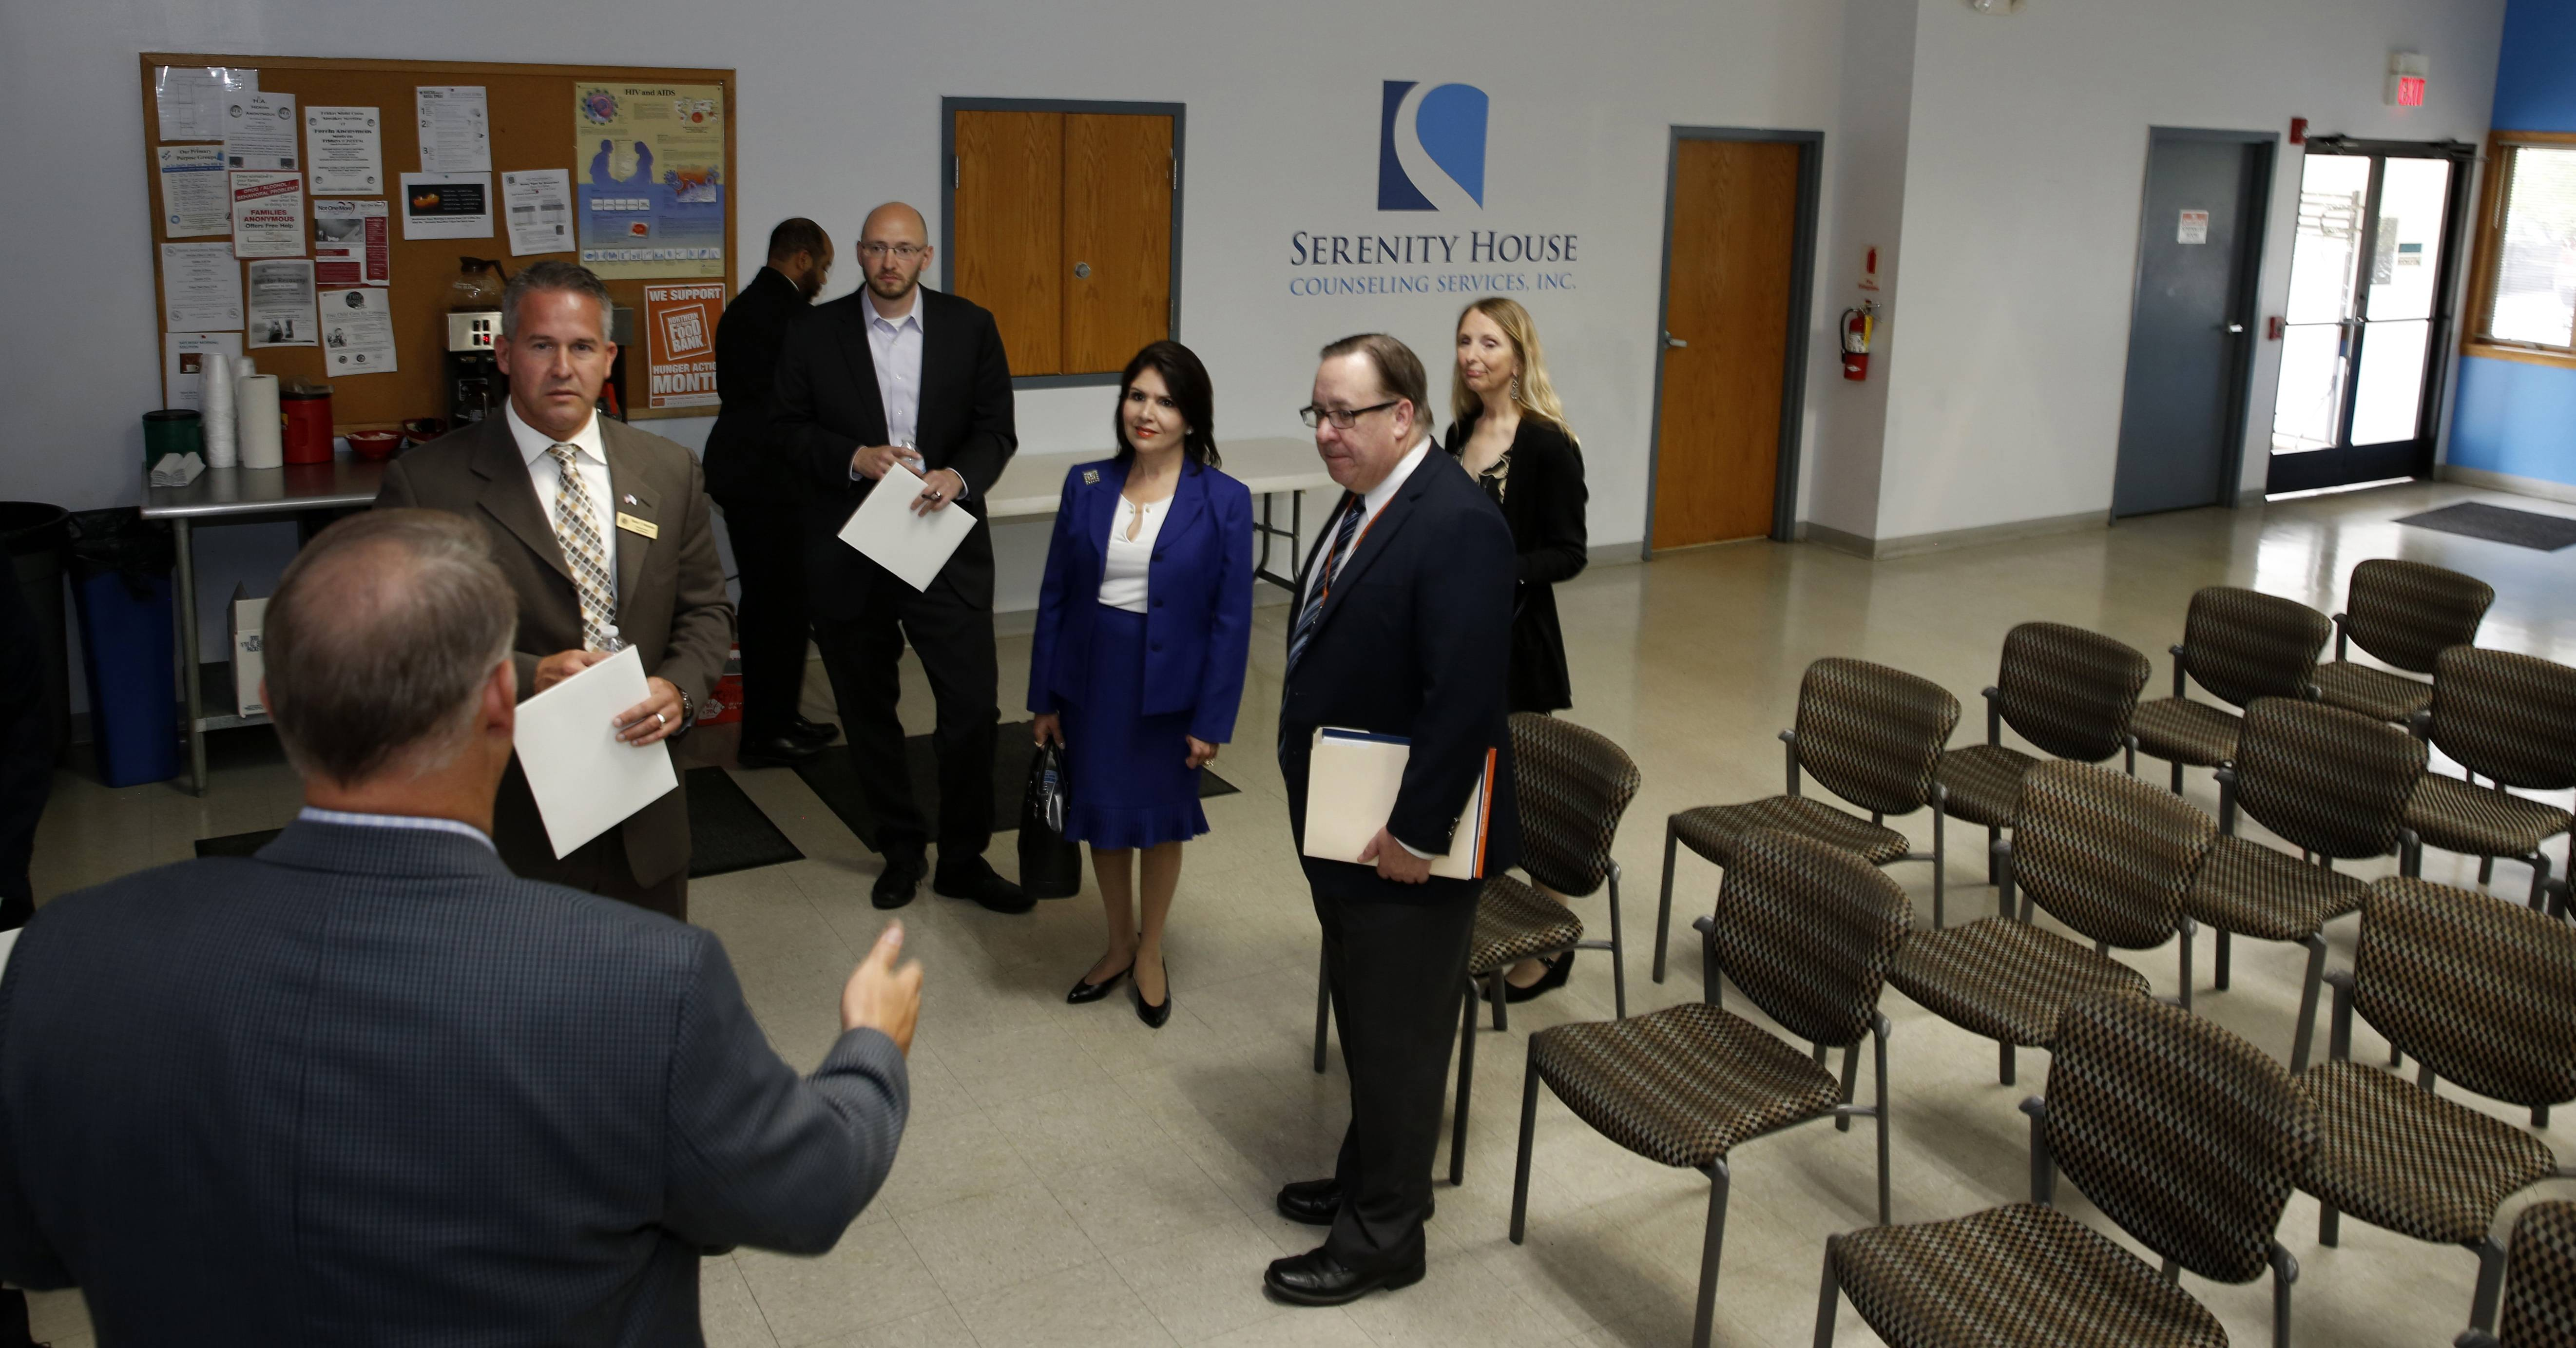 State officials tour Serenity House Counseling Services in Addison, which offers a 90-day residential treatment program to people who have been clean from drugs or alcohol for 14 days. Some clients come after completing a detox service at a hospital or mental health facility.